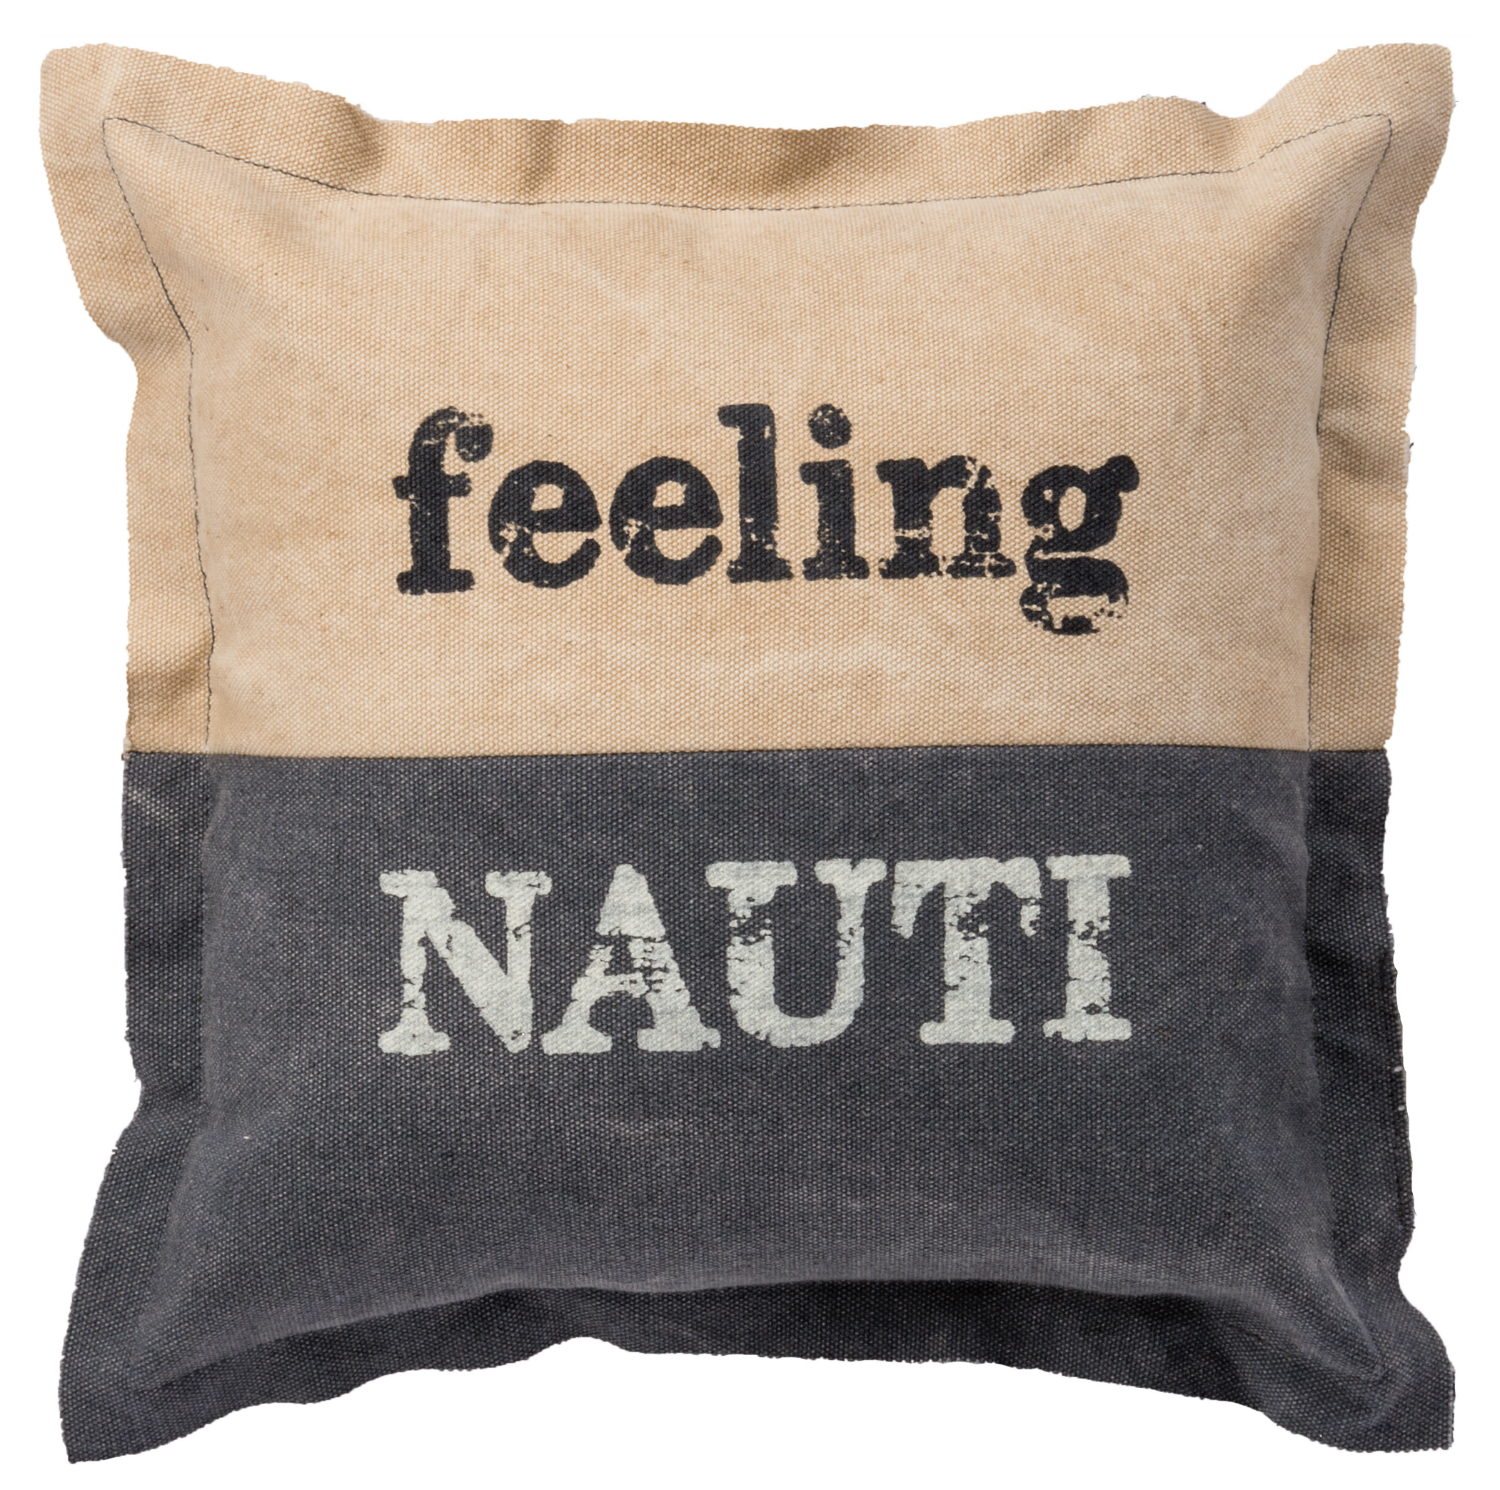 Feeling Nauti Ships Wheel Accent Throw Pillow 10 Inches Tan and Navy Blue